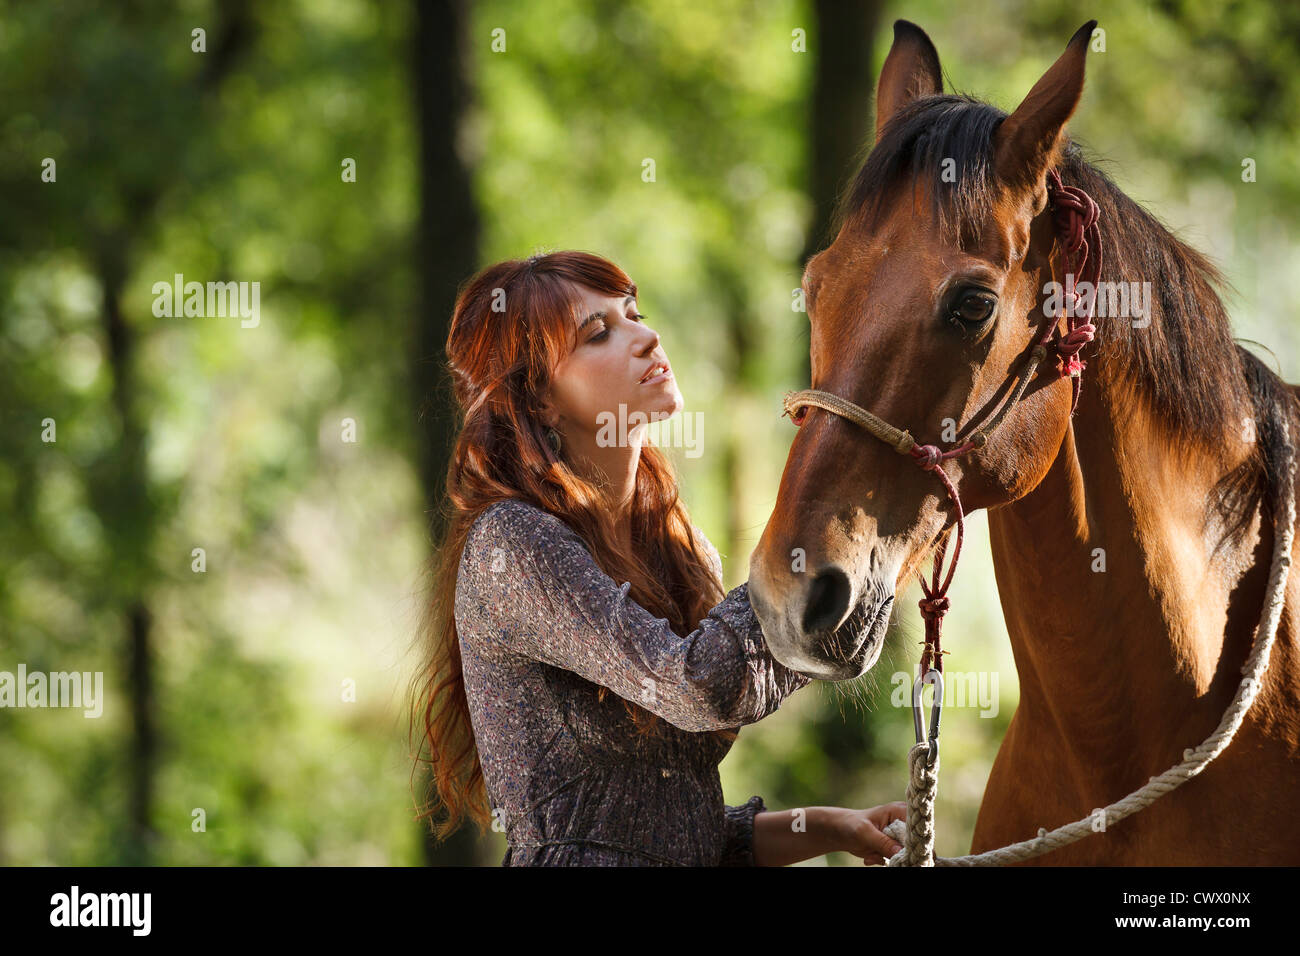 Woman walking horse in forest Stock Photo